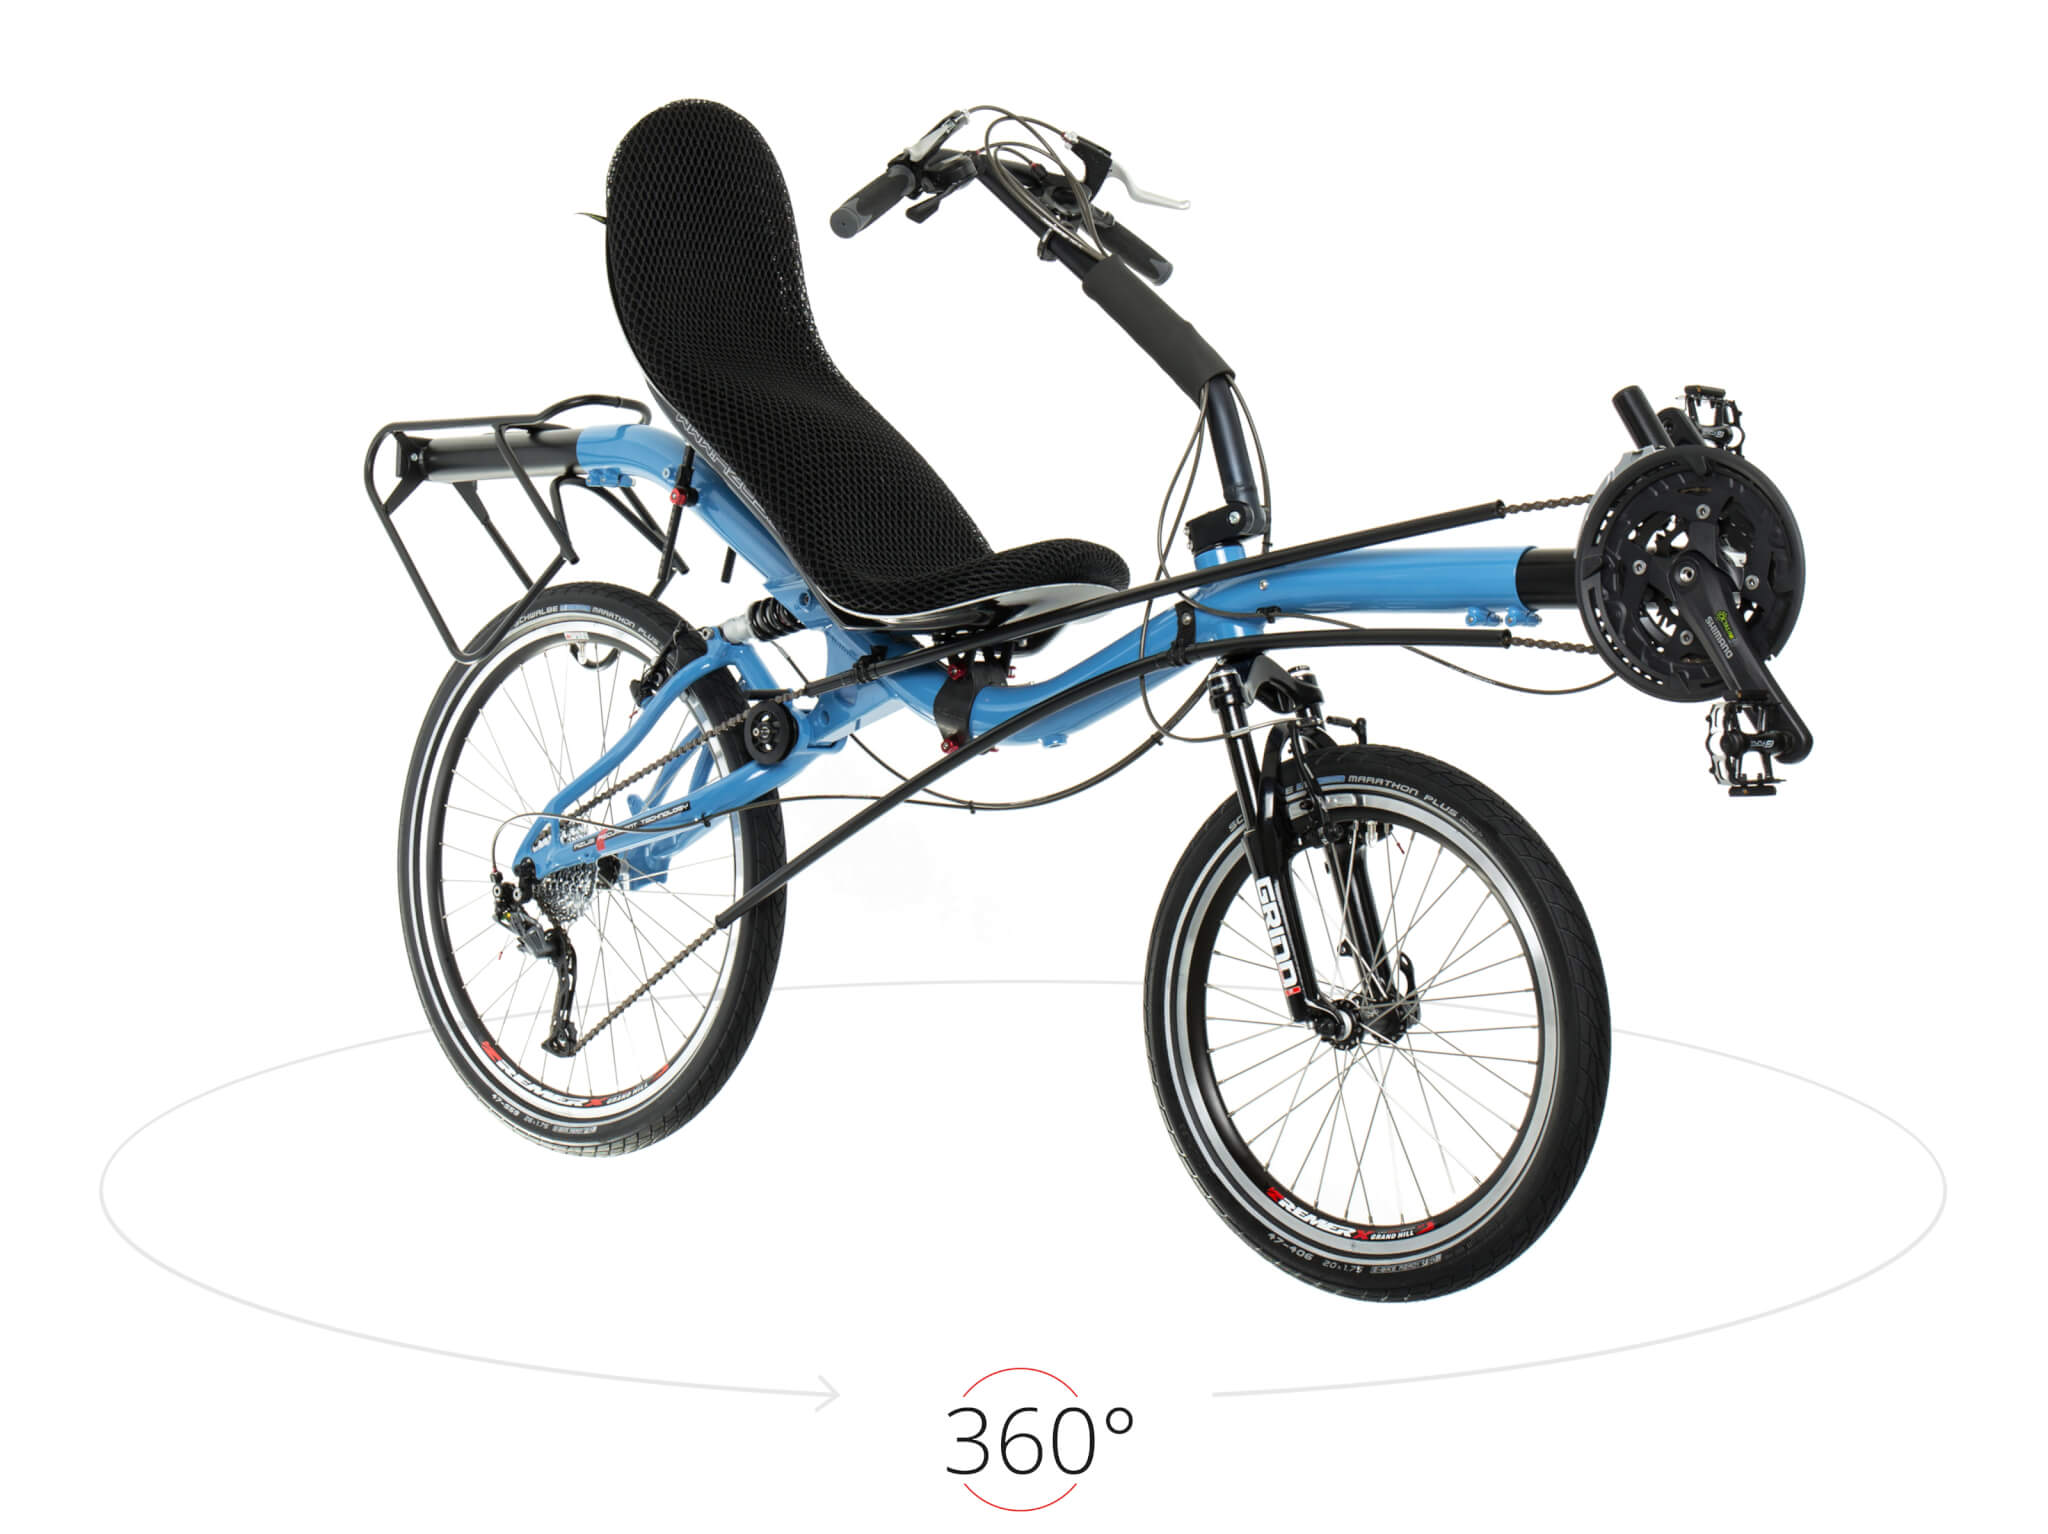 30d2bdf4f9e We have been continuously improving it since 2000 and today we are more  than happy with it. You see, we believe that the bike should adapt to the  rider, ...